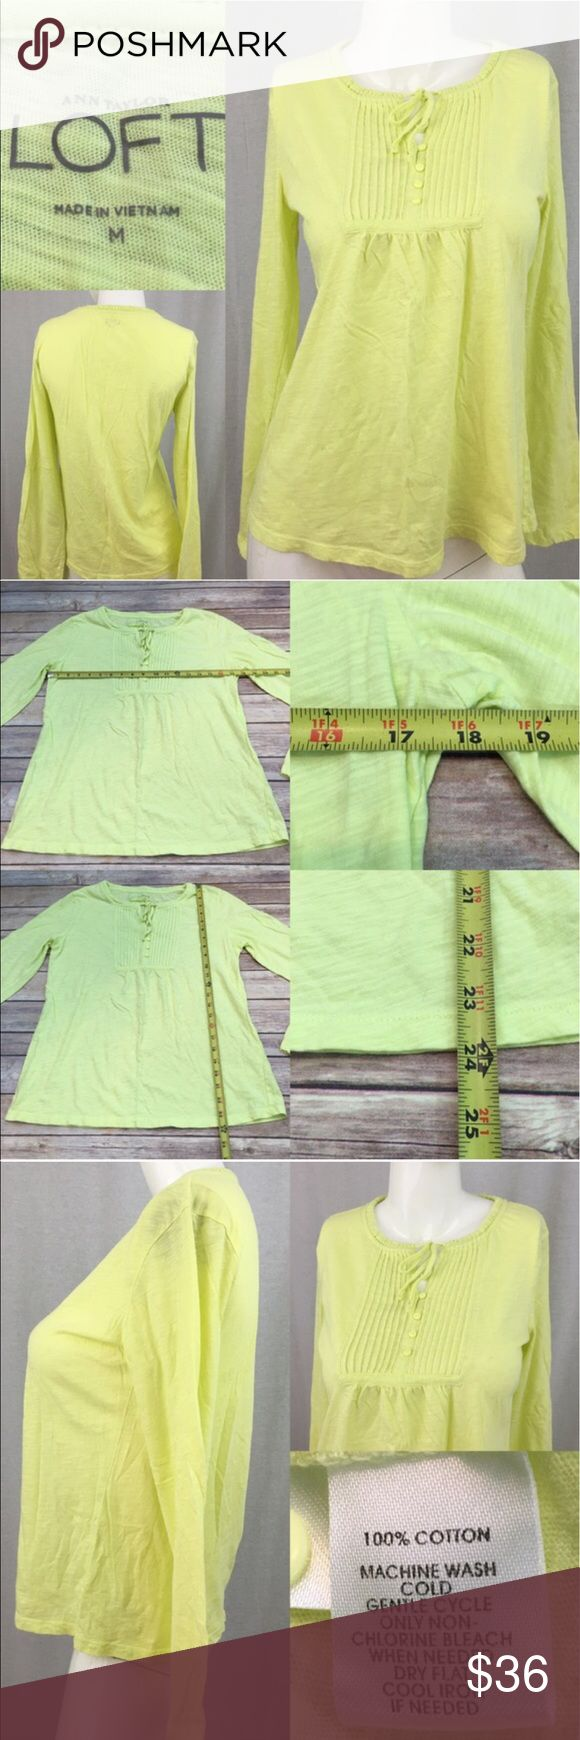 🌈Sz Medium Ann Taylor LOFT Yellow Long Sleeve Top Measurements are in photos. Normal wash wear, no flaws. B2  I do not comment to my buyers after purchases, due to their privacy. If you would like any reassurance after your purchase that I did receive your order, please feel free to comment on the listing and I will promptly respond.   I ship everyday and I always package safely. Thank you for shopping my closet! LOFT Tops